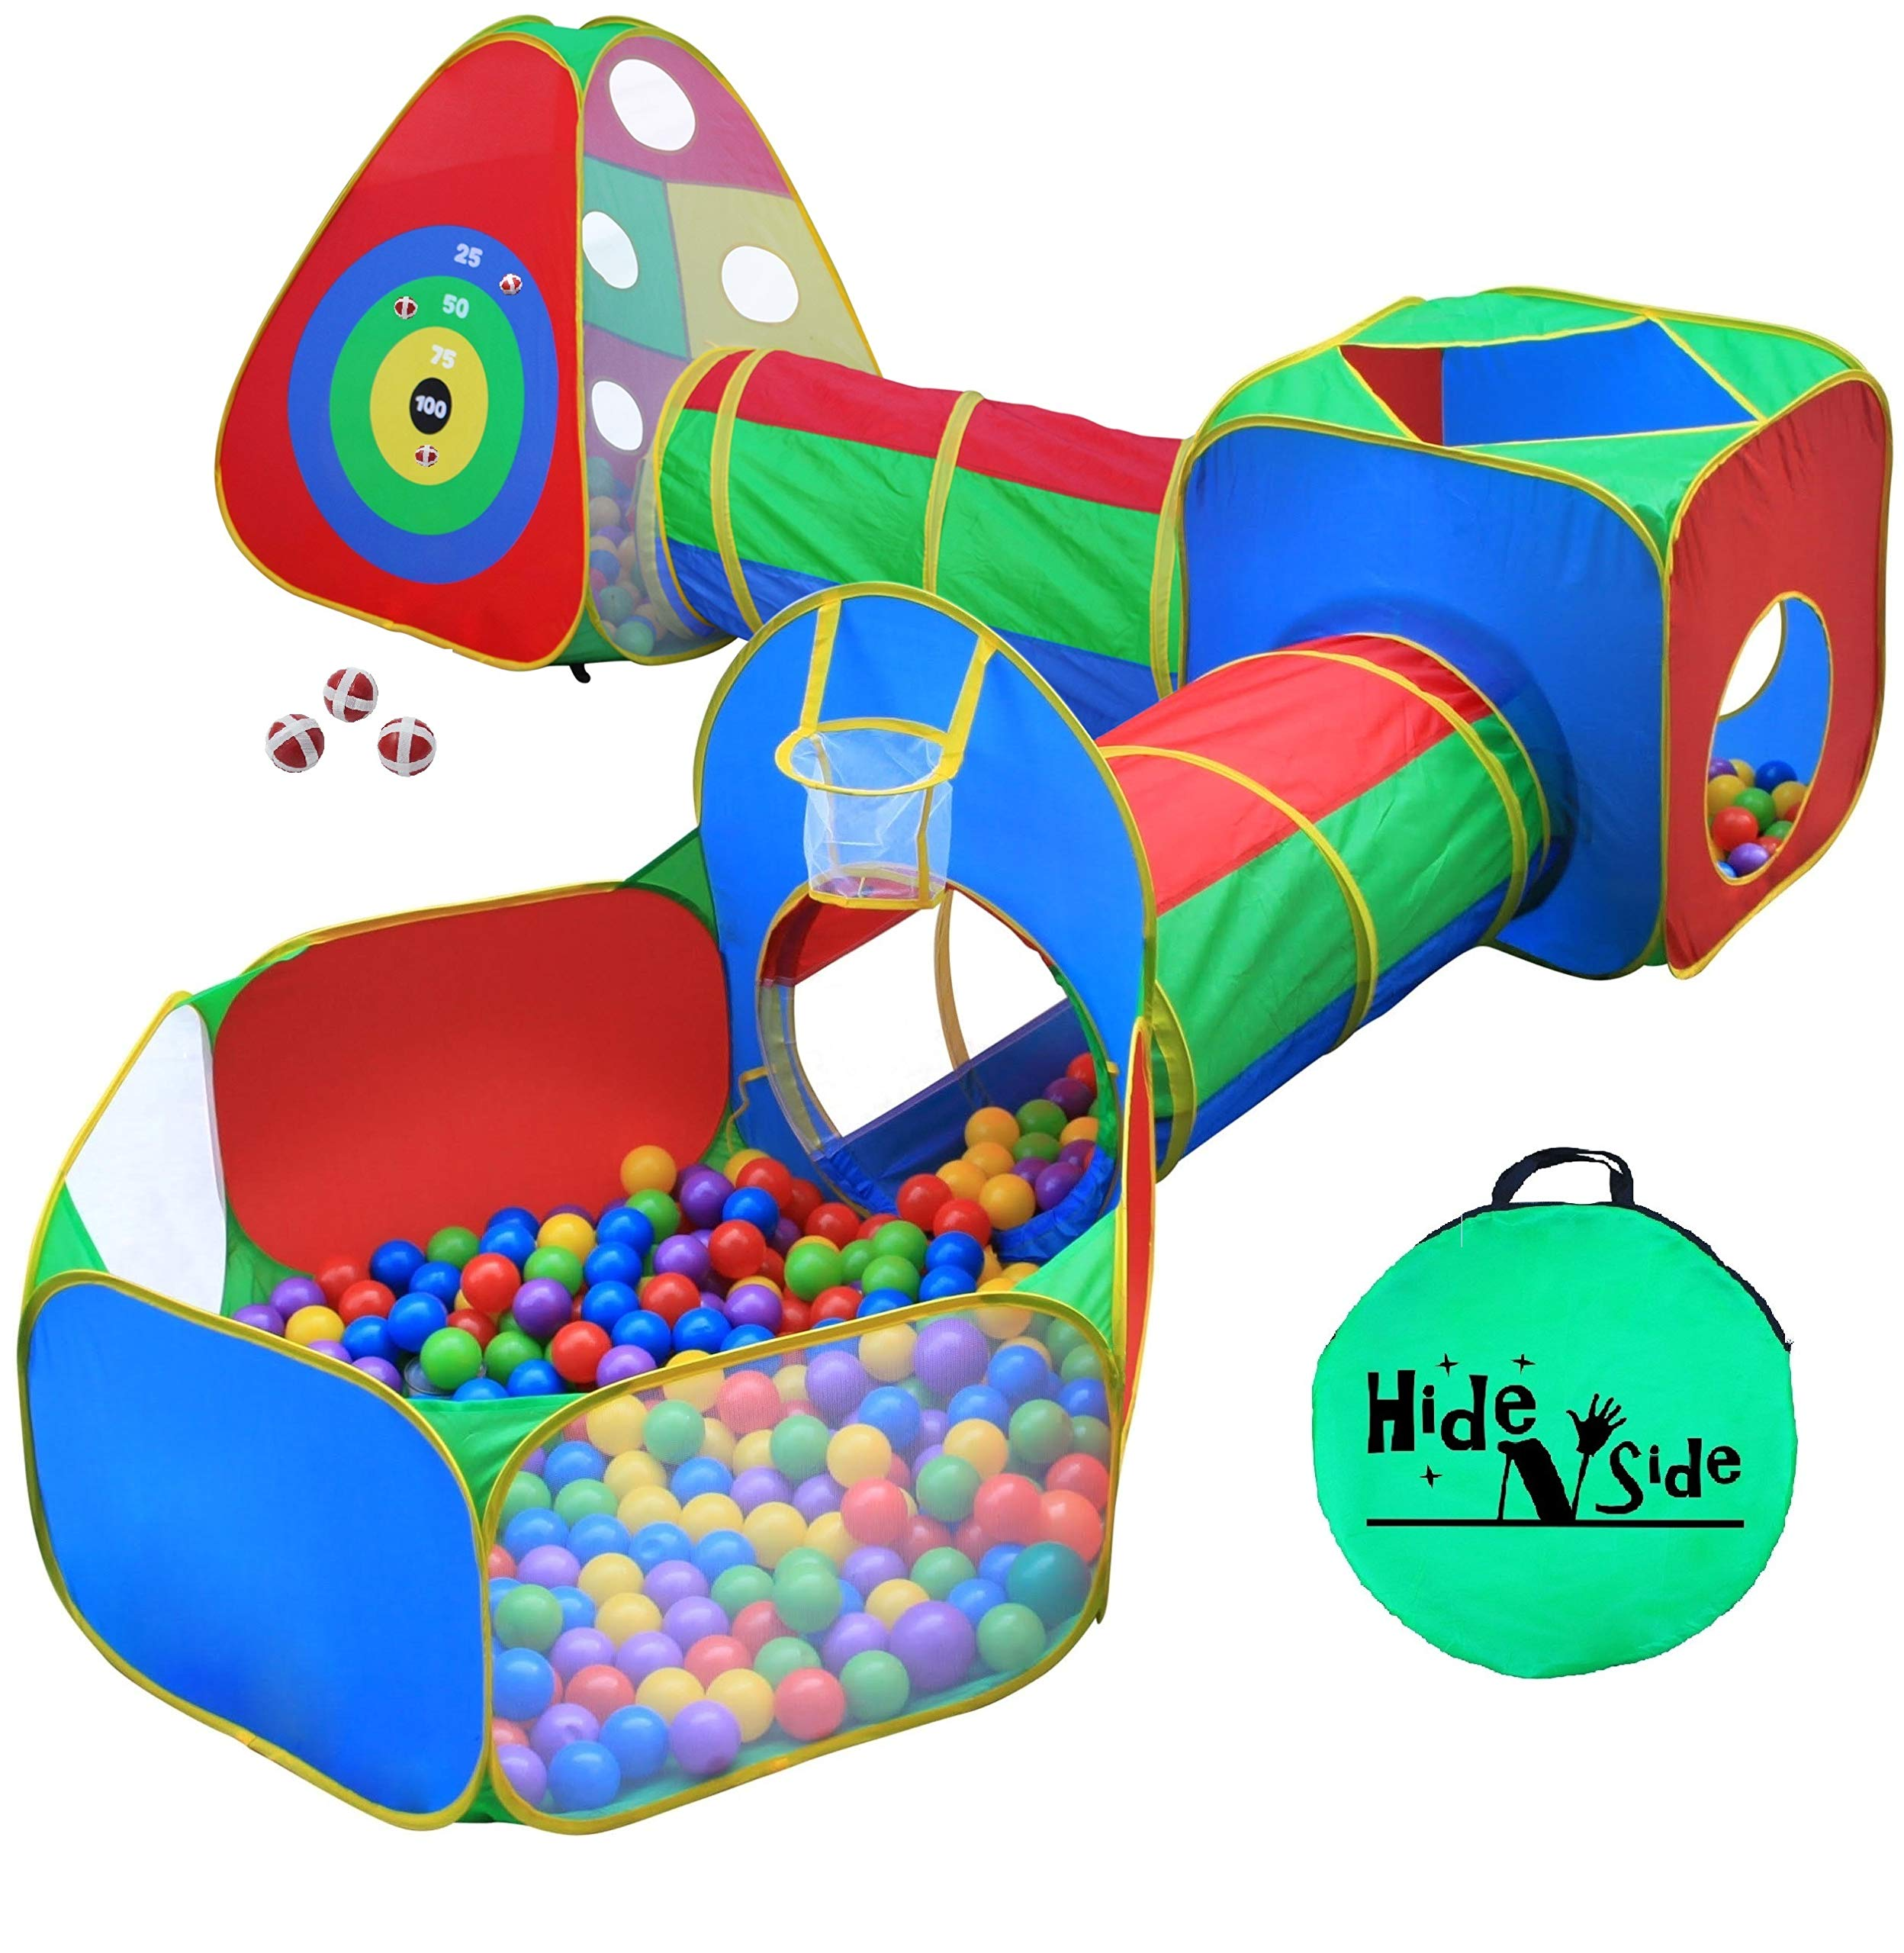 5pc Kids Ball Pit Tents and Tunnels, Toddler Jungle Gym Play Tent with Play Crawl Tunnel Toy, for Boys babies infants Children, w/ Basketball Hoop, Indoor & Outdoor, Dart Wall Game w/ 3 Dart Balls